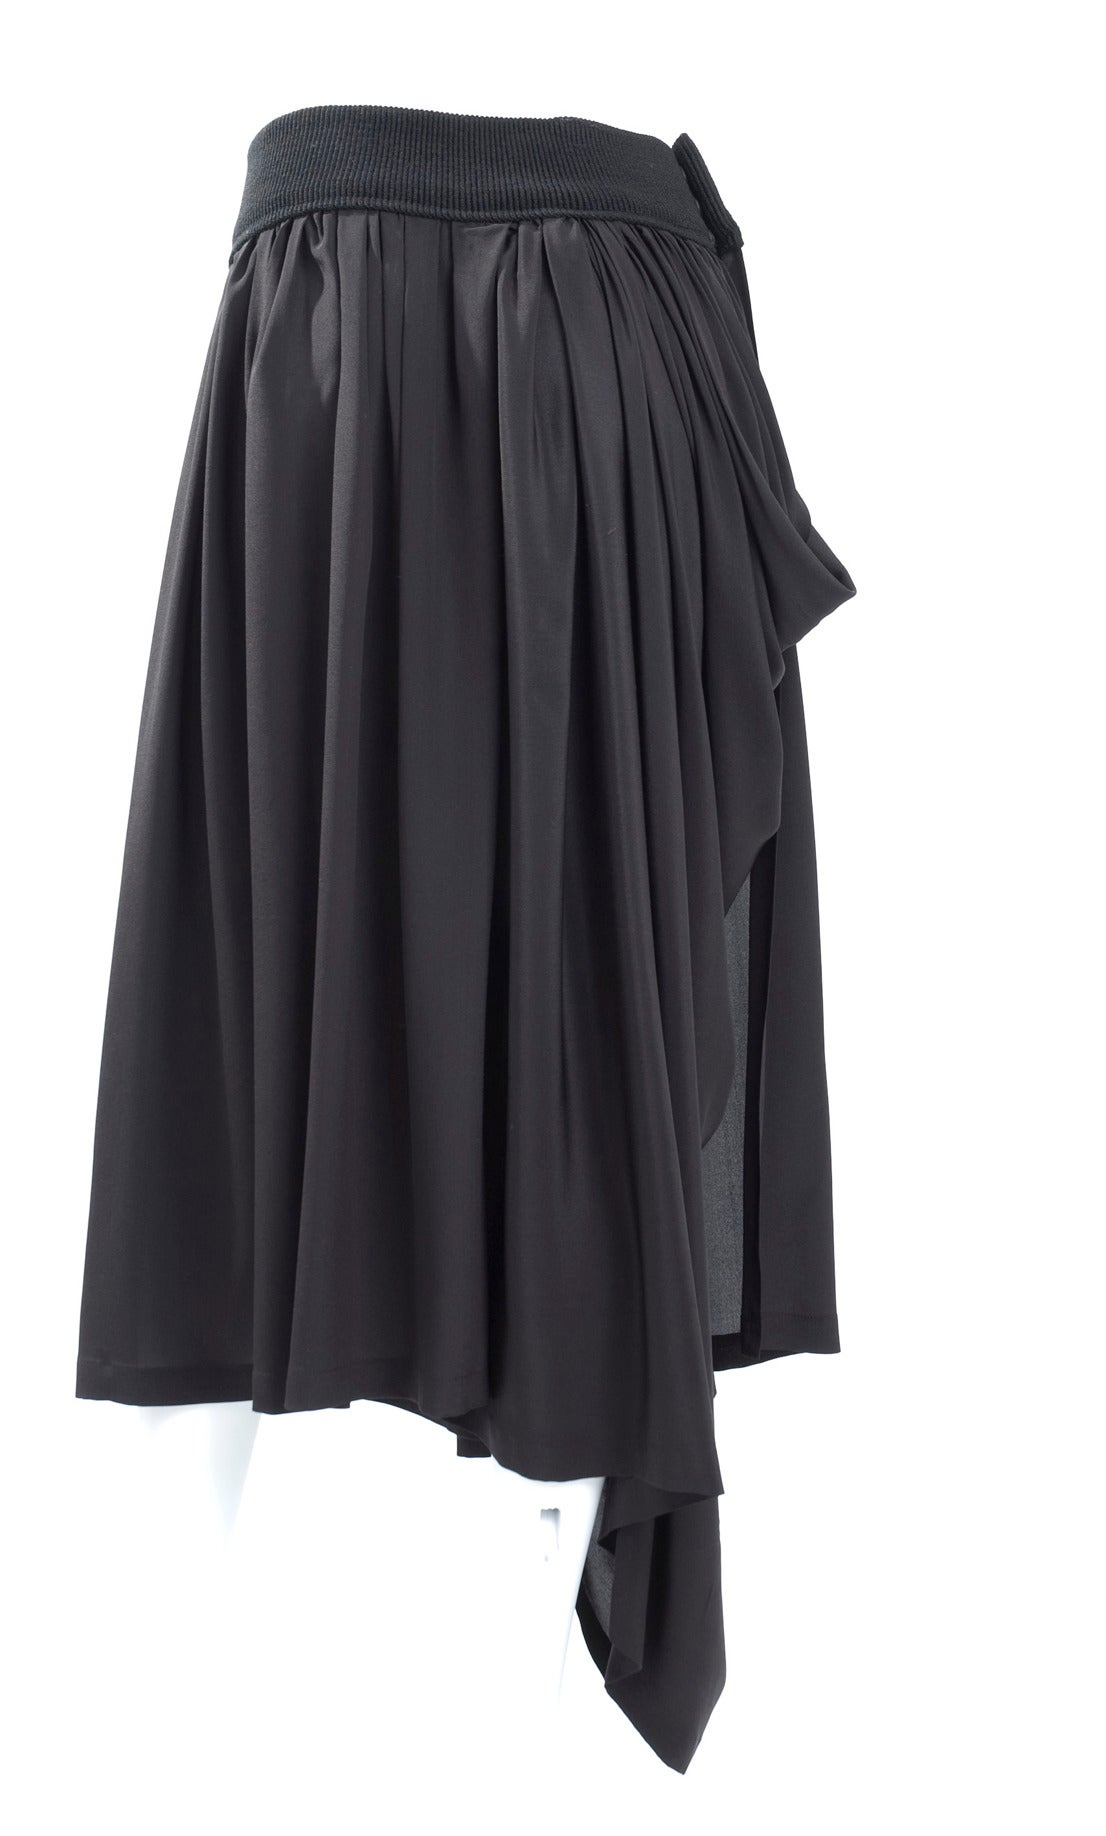 90's Yohji Yamamoto Black Silk Wrap Skirt For Sale at 1stdibs